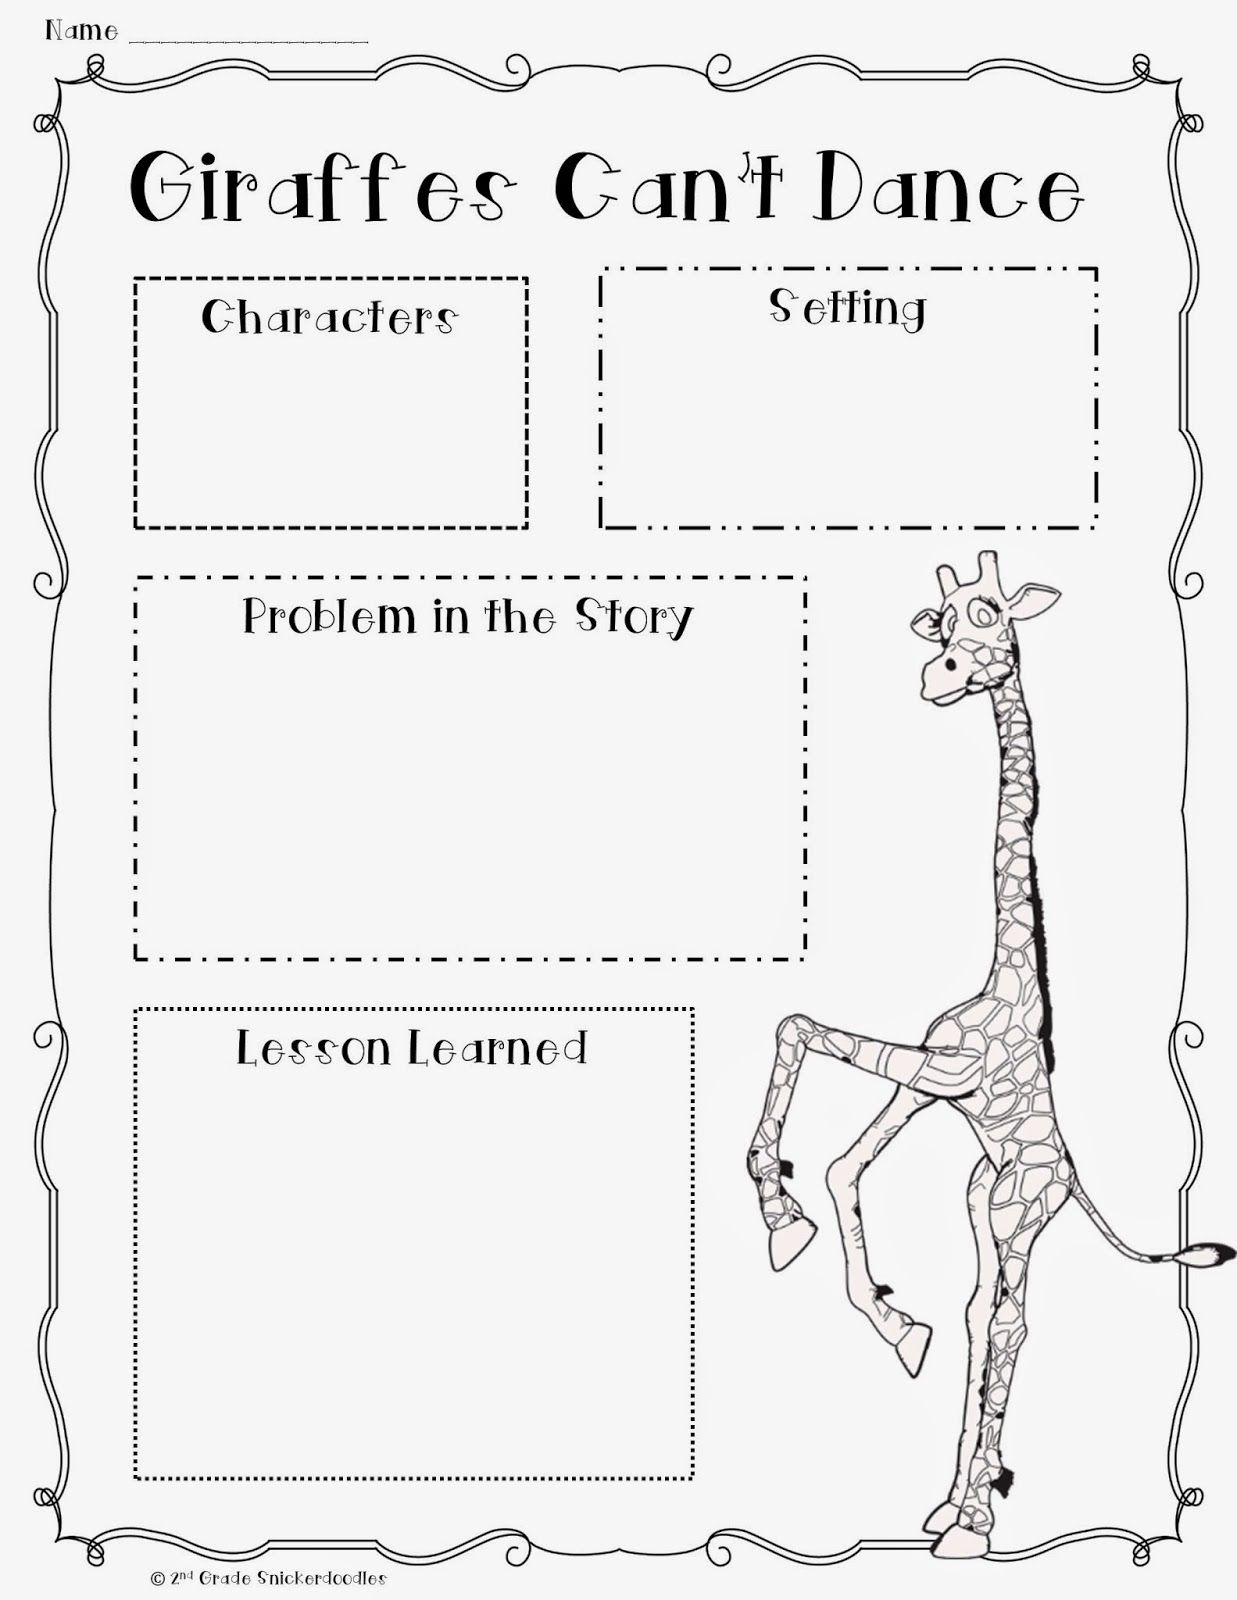 I Love To Start Out The School Year By Reading Giraffes